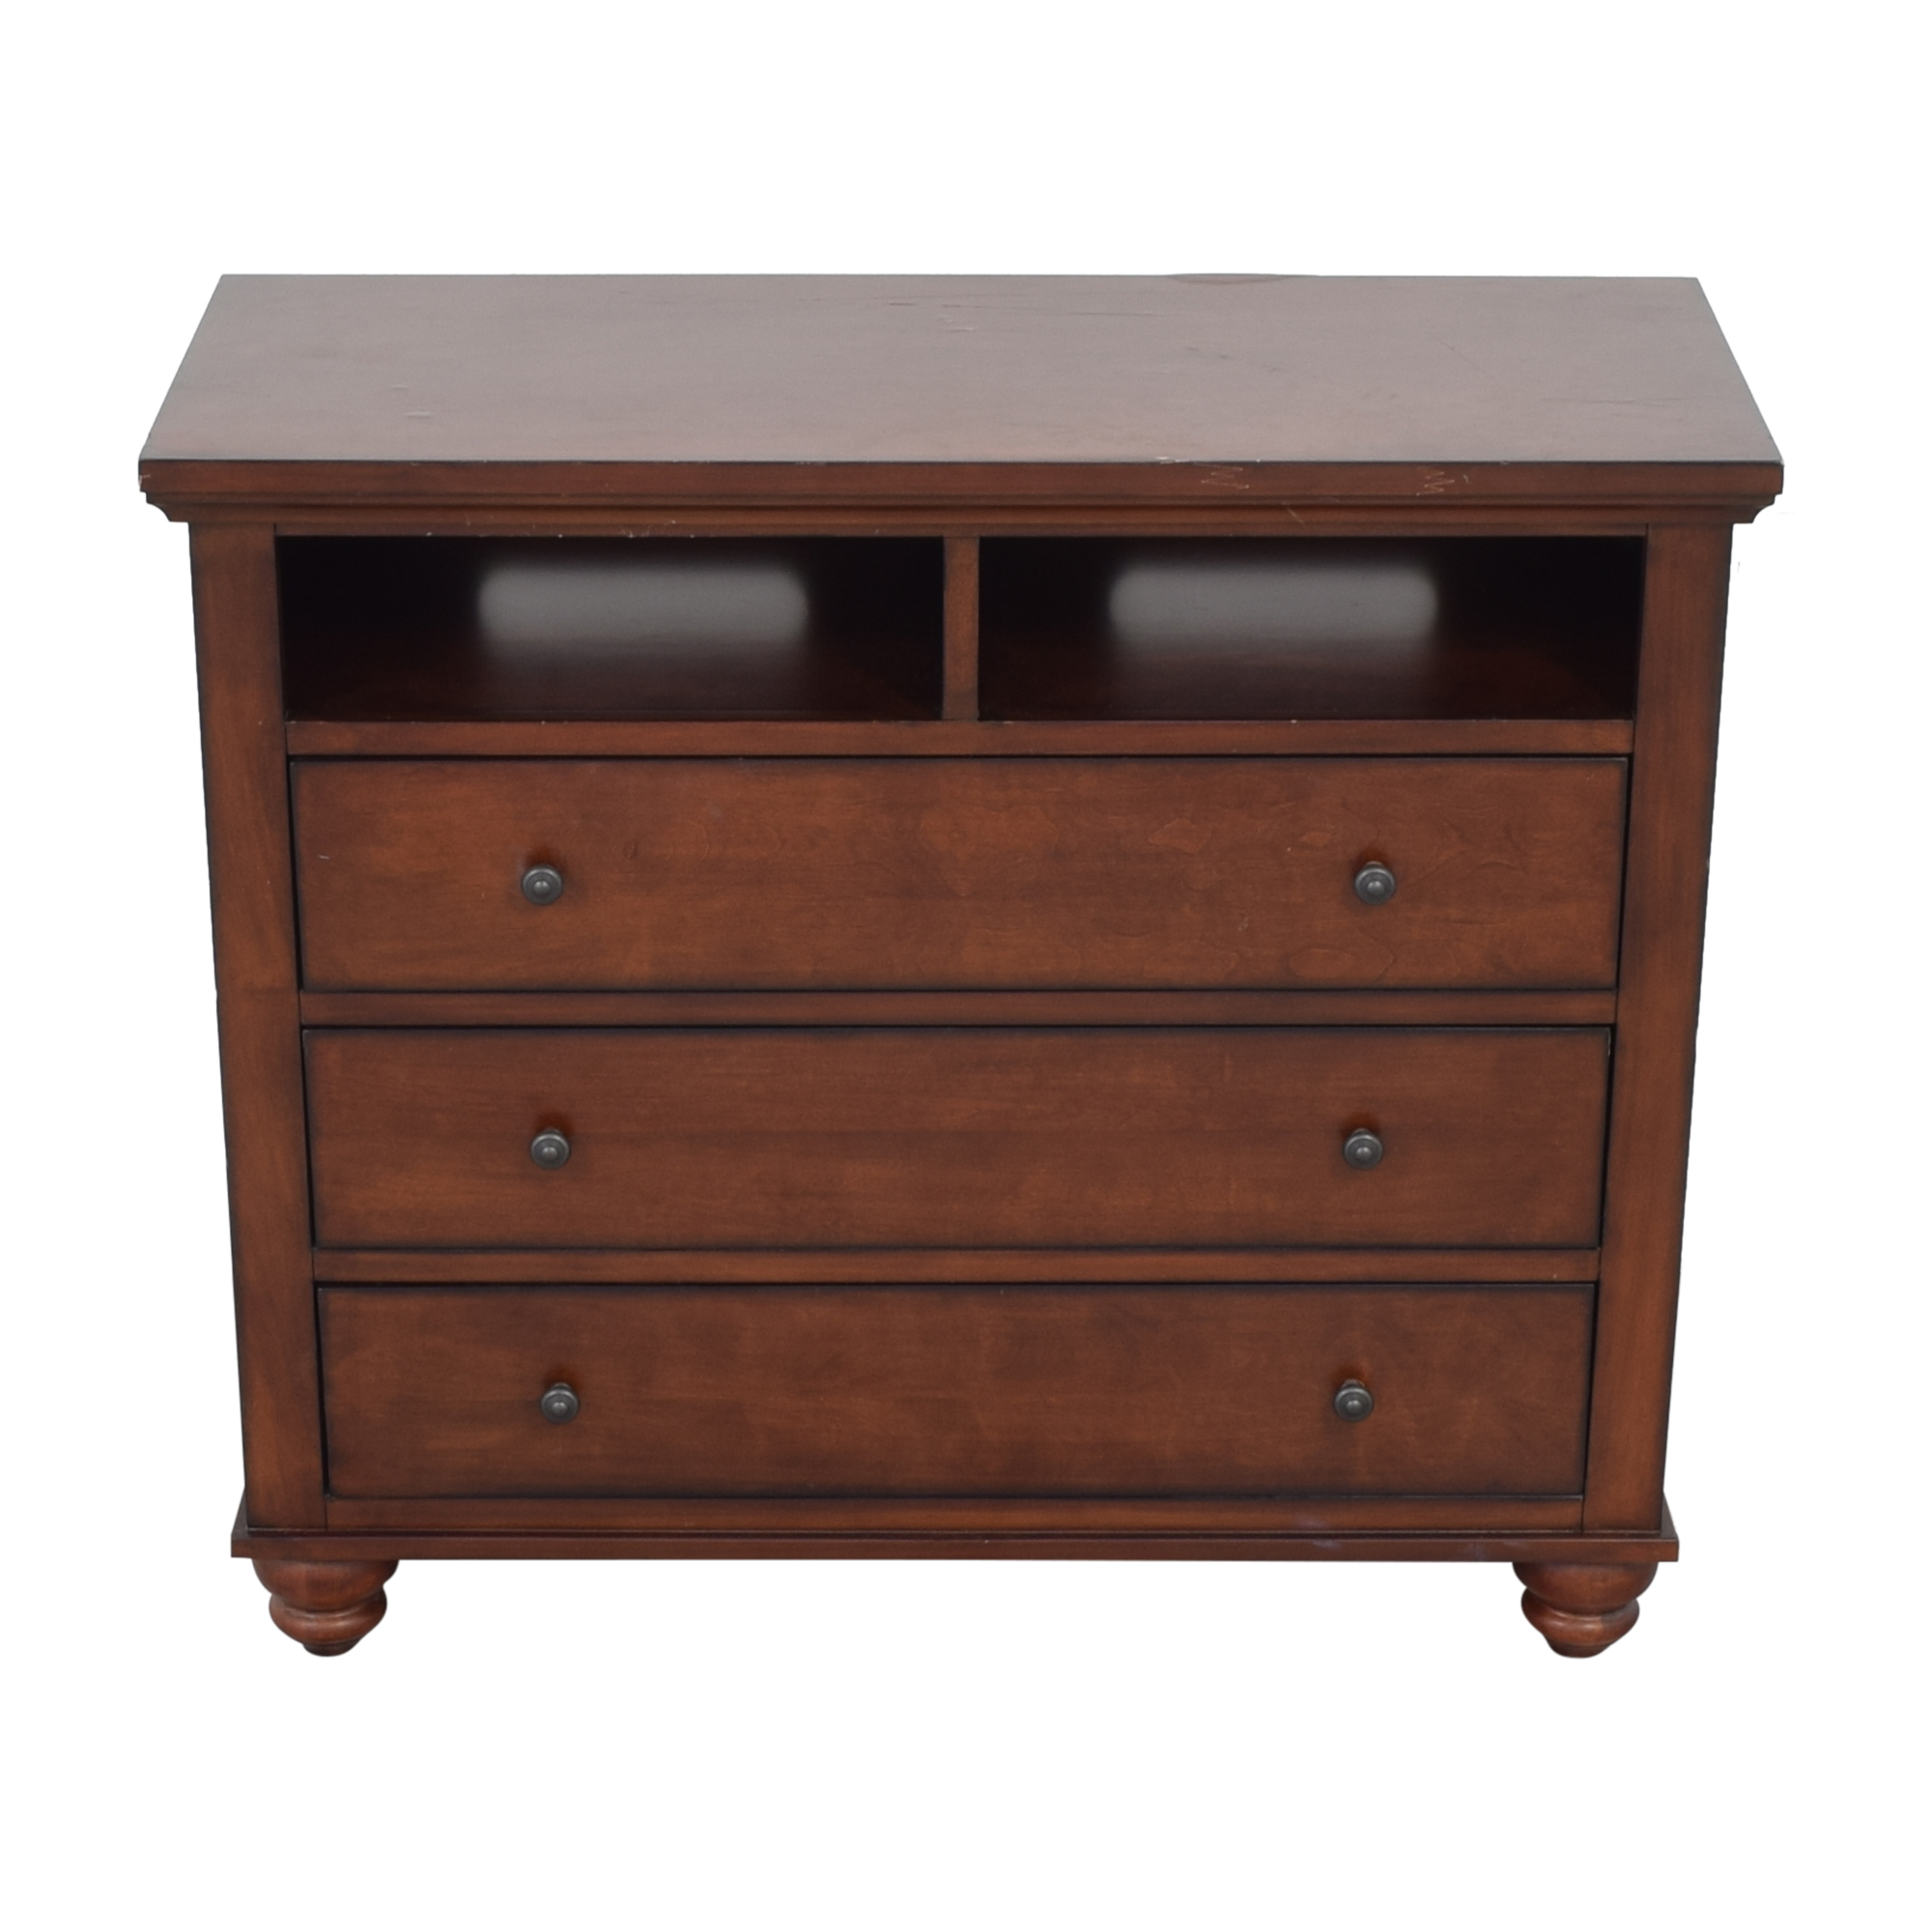 aspenhome aspenhome Entertainment Chest on sale